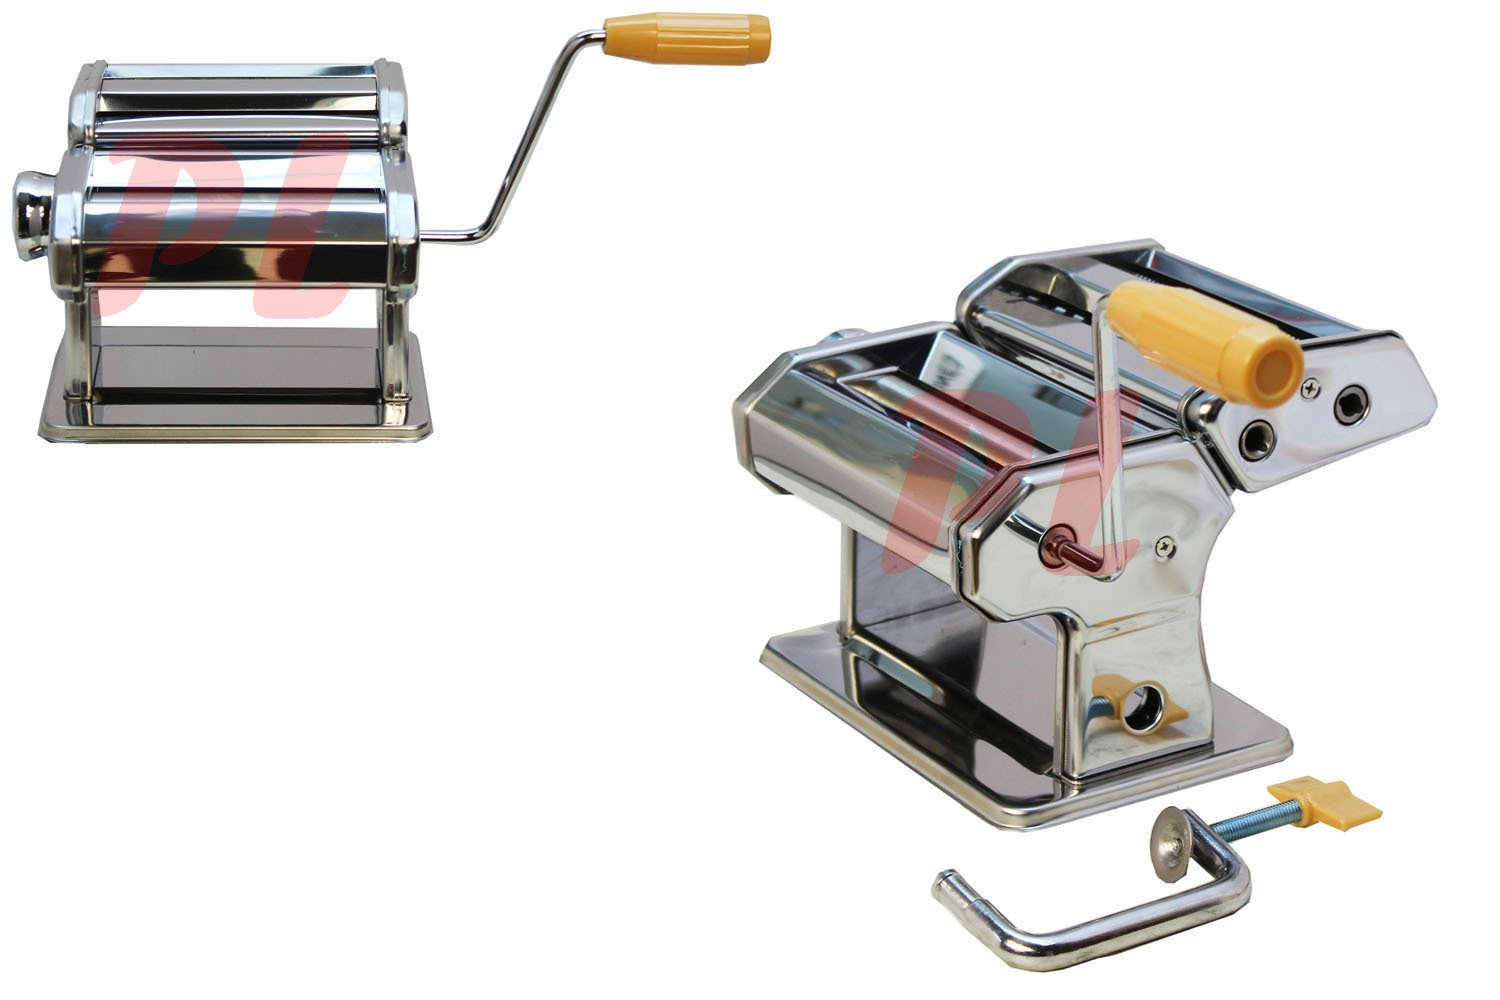 Manual 7'' Stainless Steel Pasta Maker Crank Machine 3 Different Types of Pasta